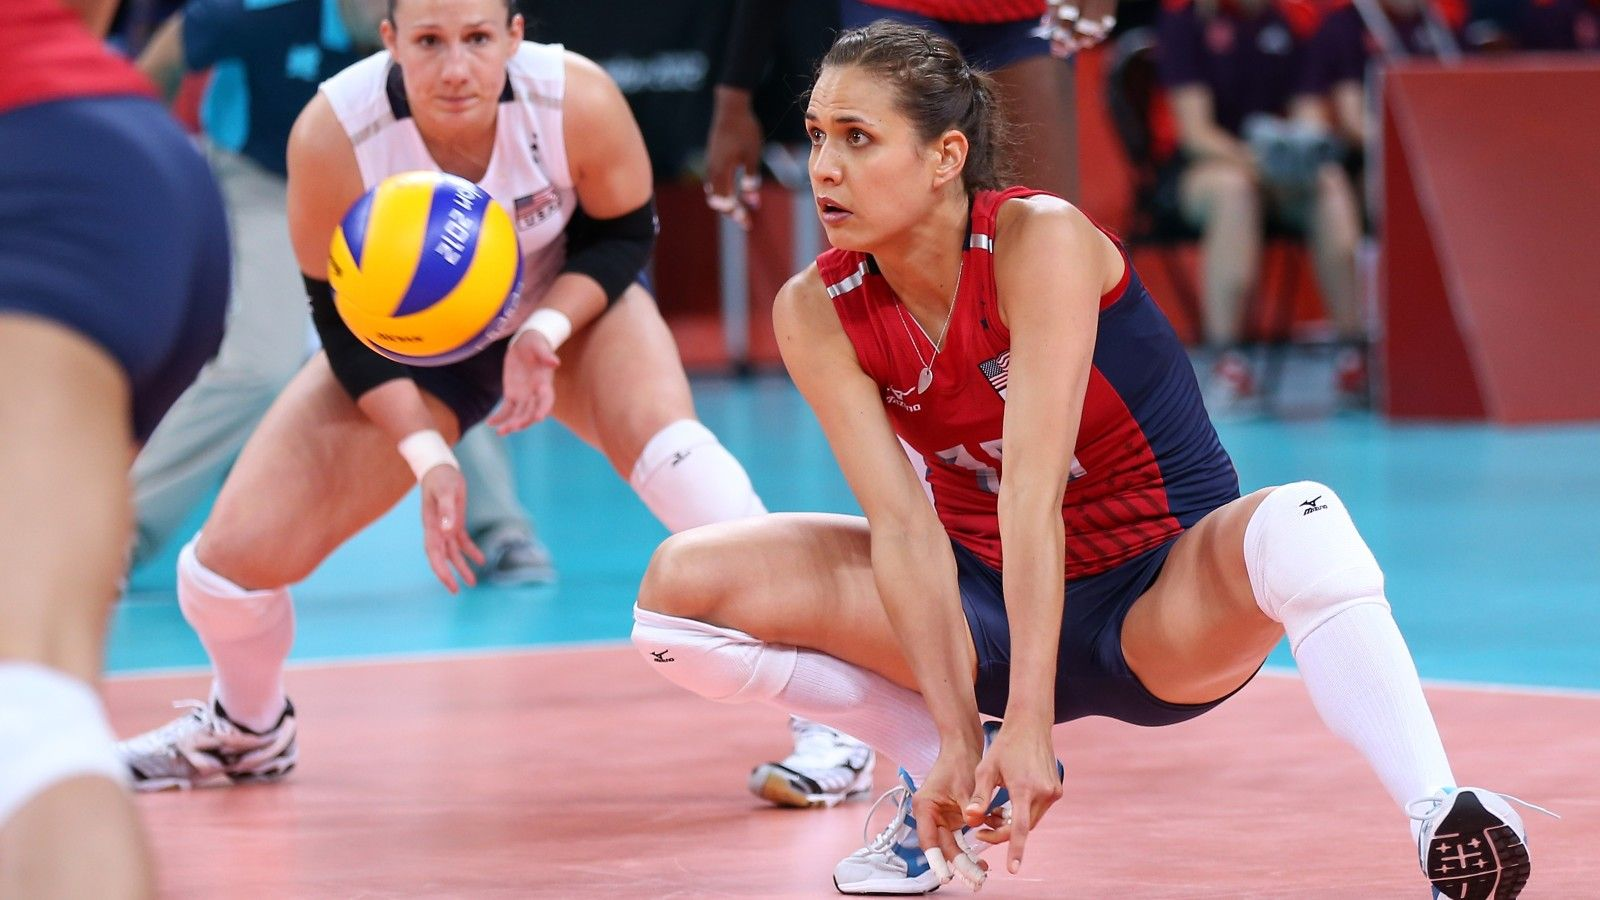 Logan Maile Lei Tom American Volleyball Player Women Volleyball Female Volleyball Players Volleyball